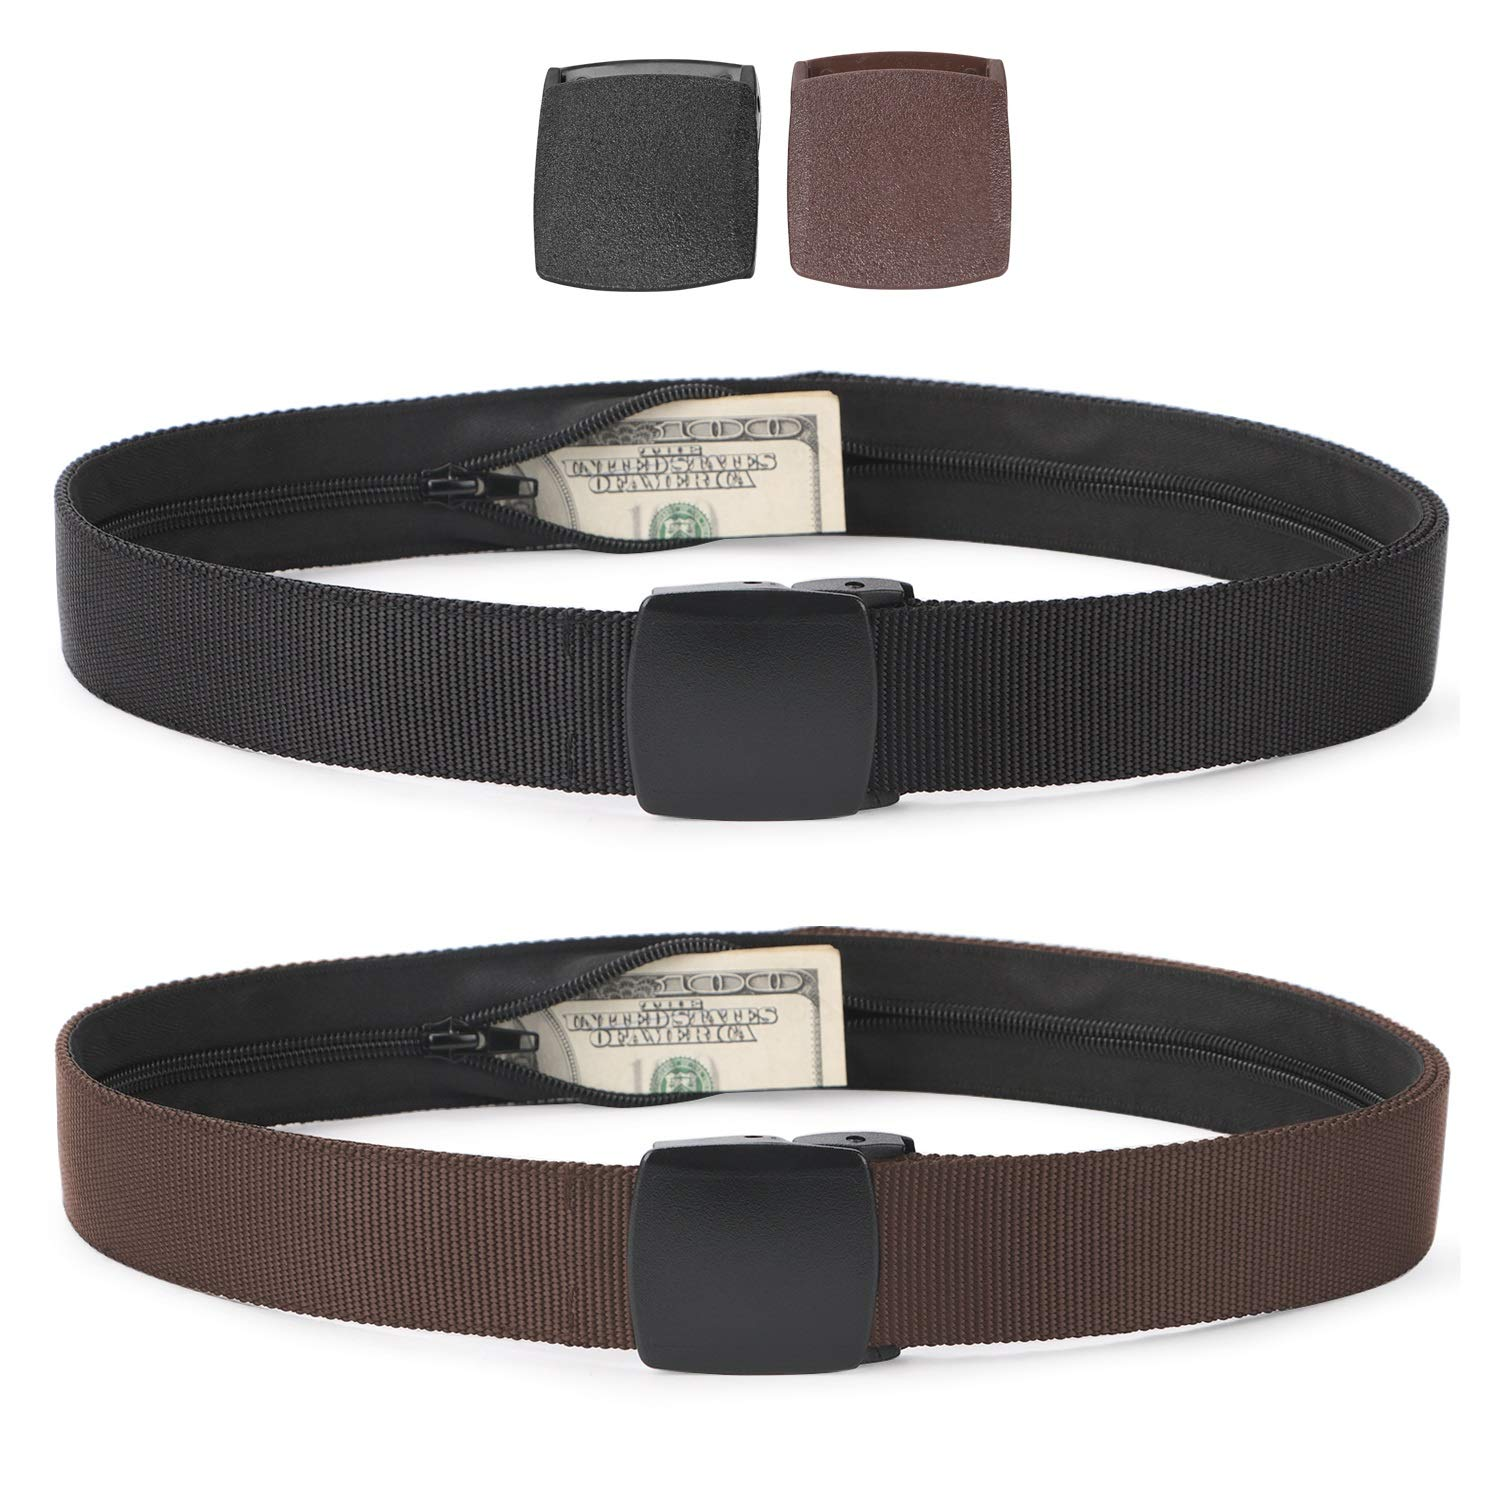 Travel Security Money Belt with Hidden Money Pocket - Cashsafe Anti-Theft Wallet Unisex Nickel free Nylon Belt by JASGOOD(Suit for pant size 26-40Inch,14-Black+Coffee) by JASGOOD